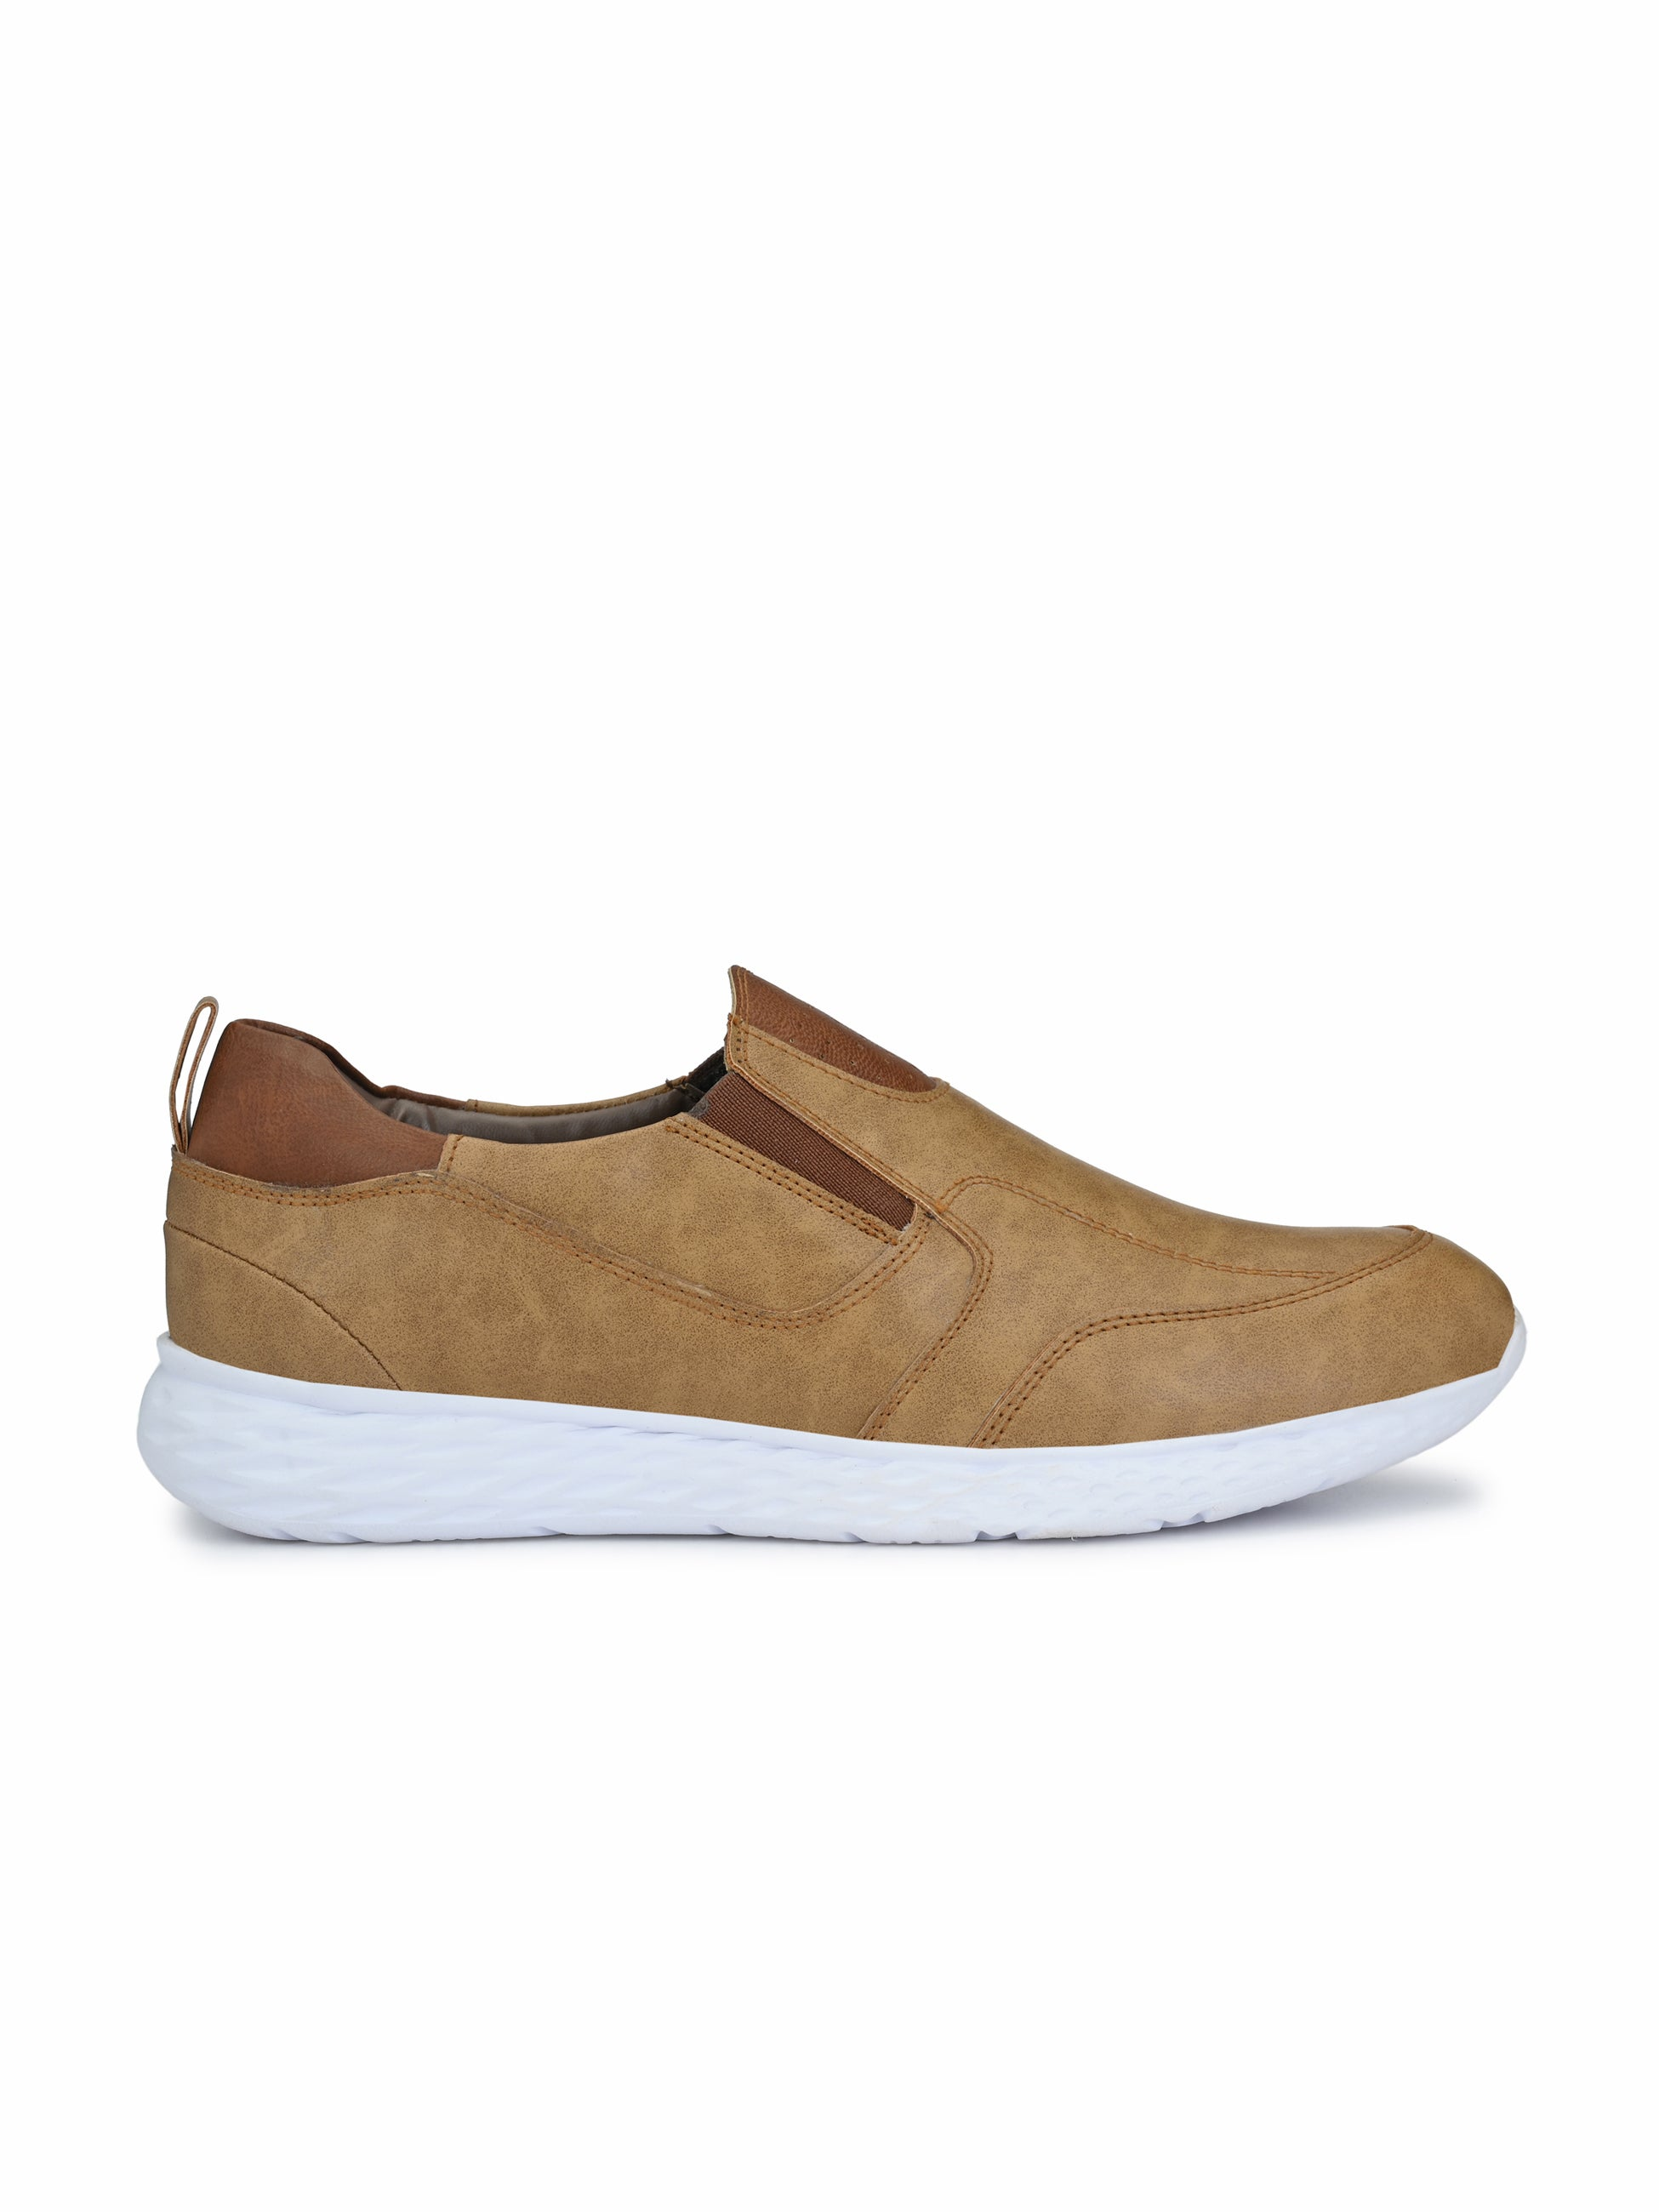 Bichrome Slip on Sneakers - shoegaro